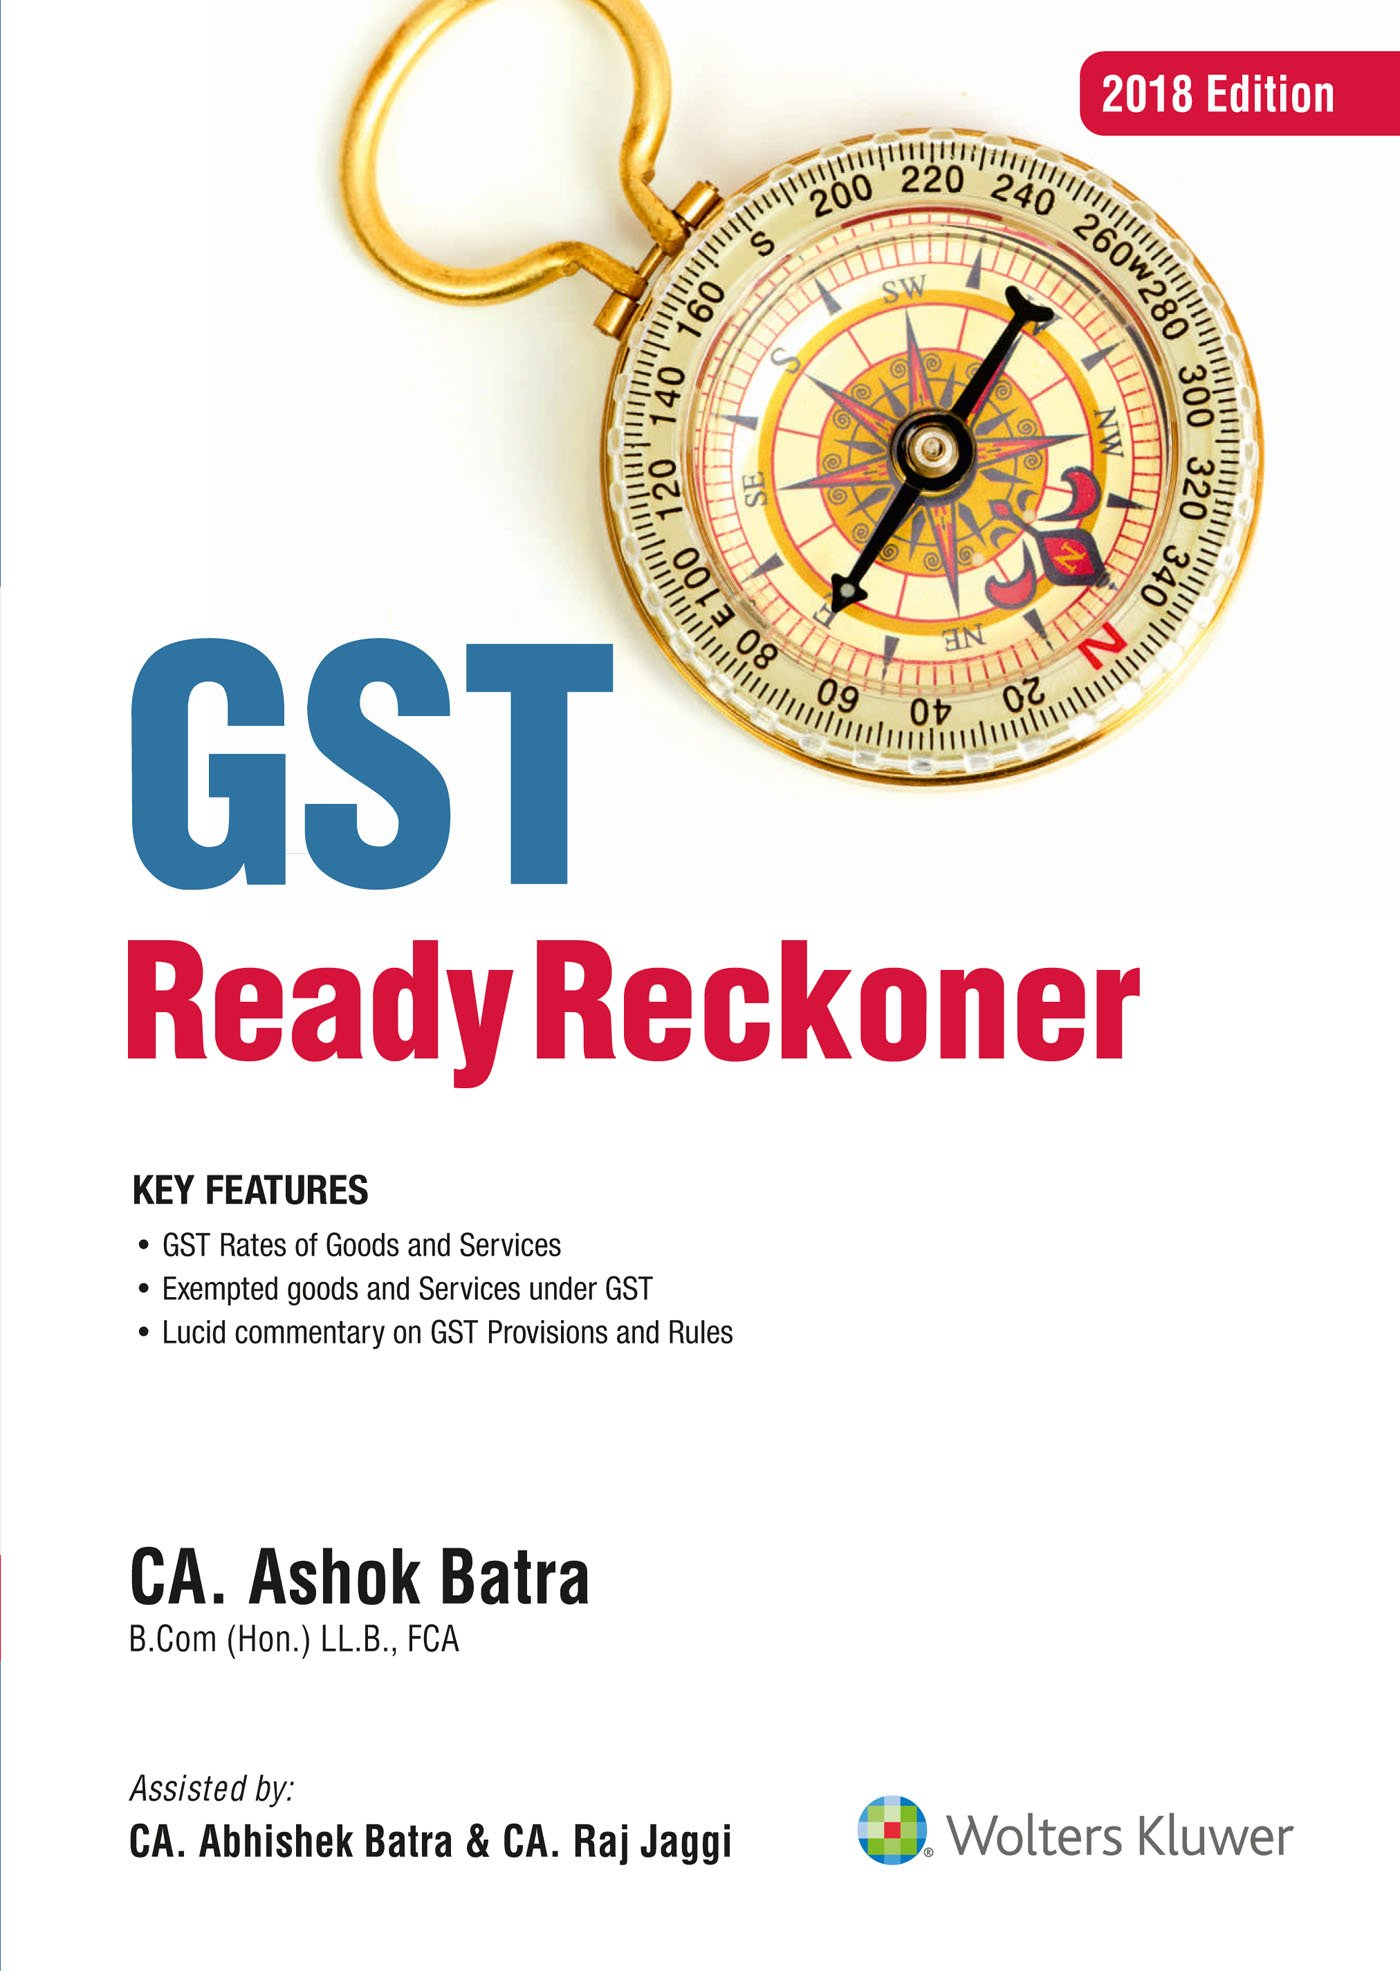 GST Ready Reckoner Paperback 14 Jun 2018